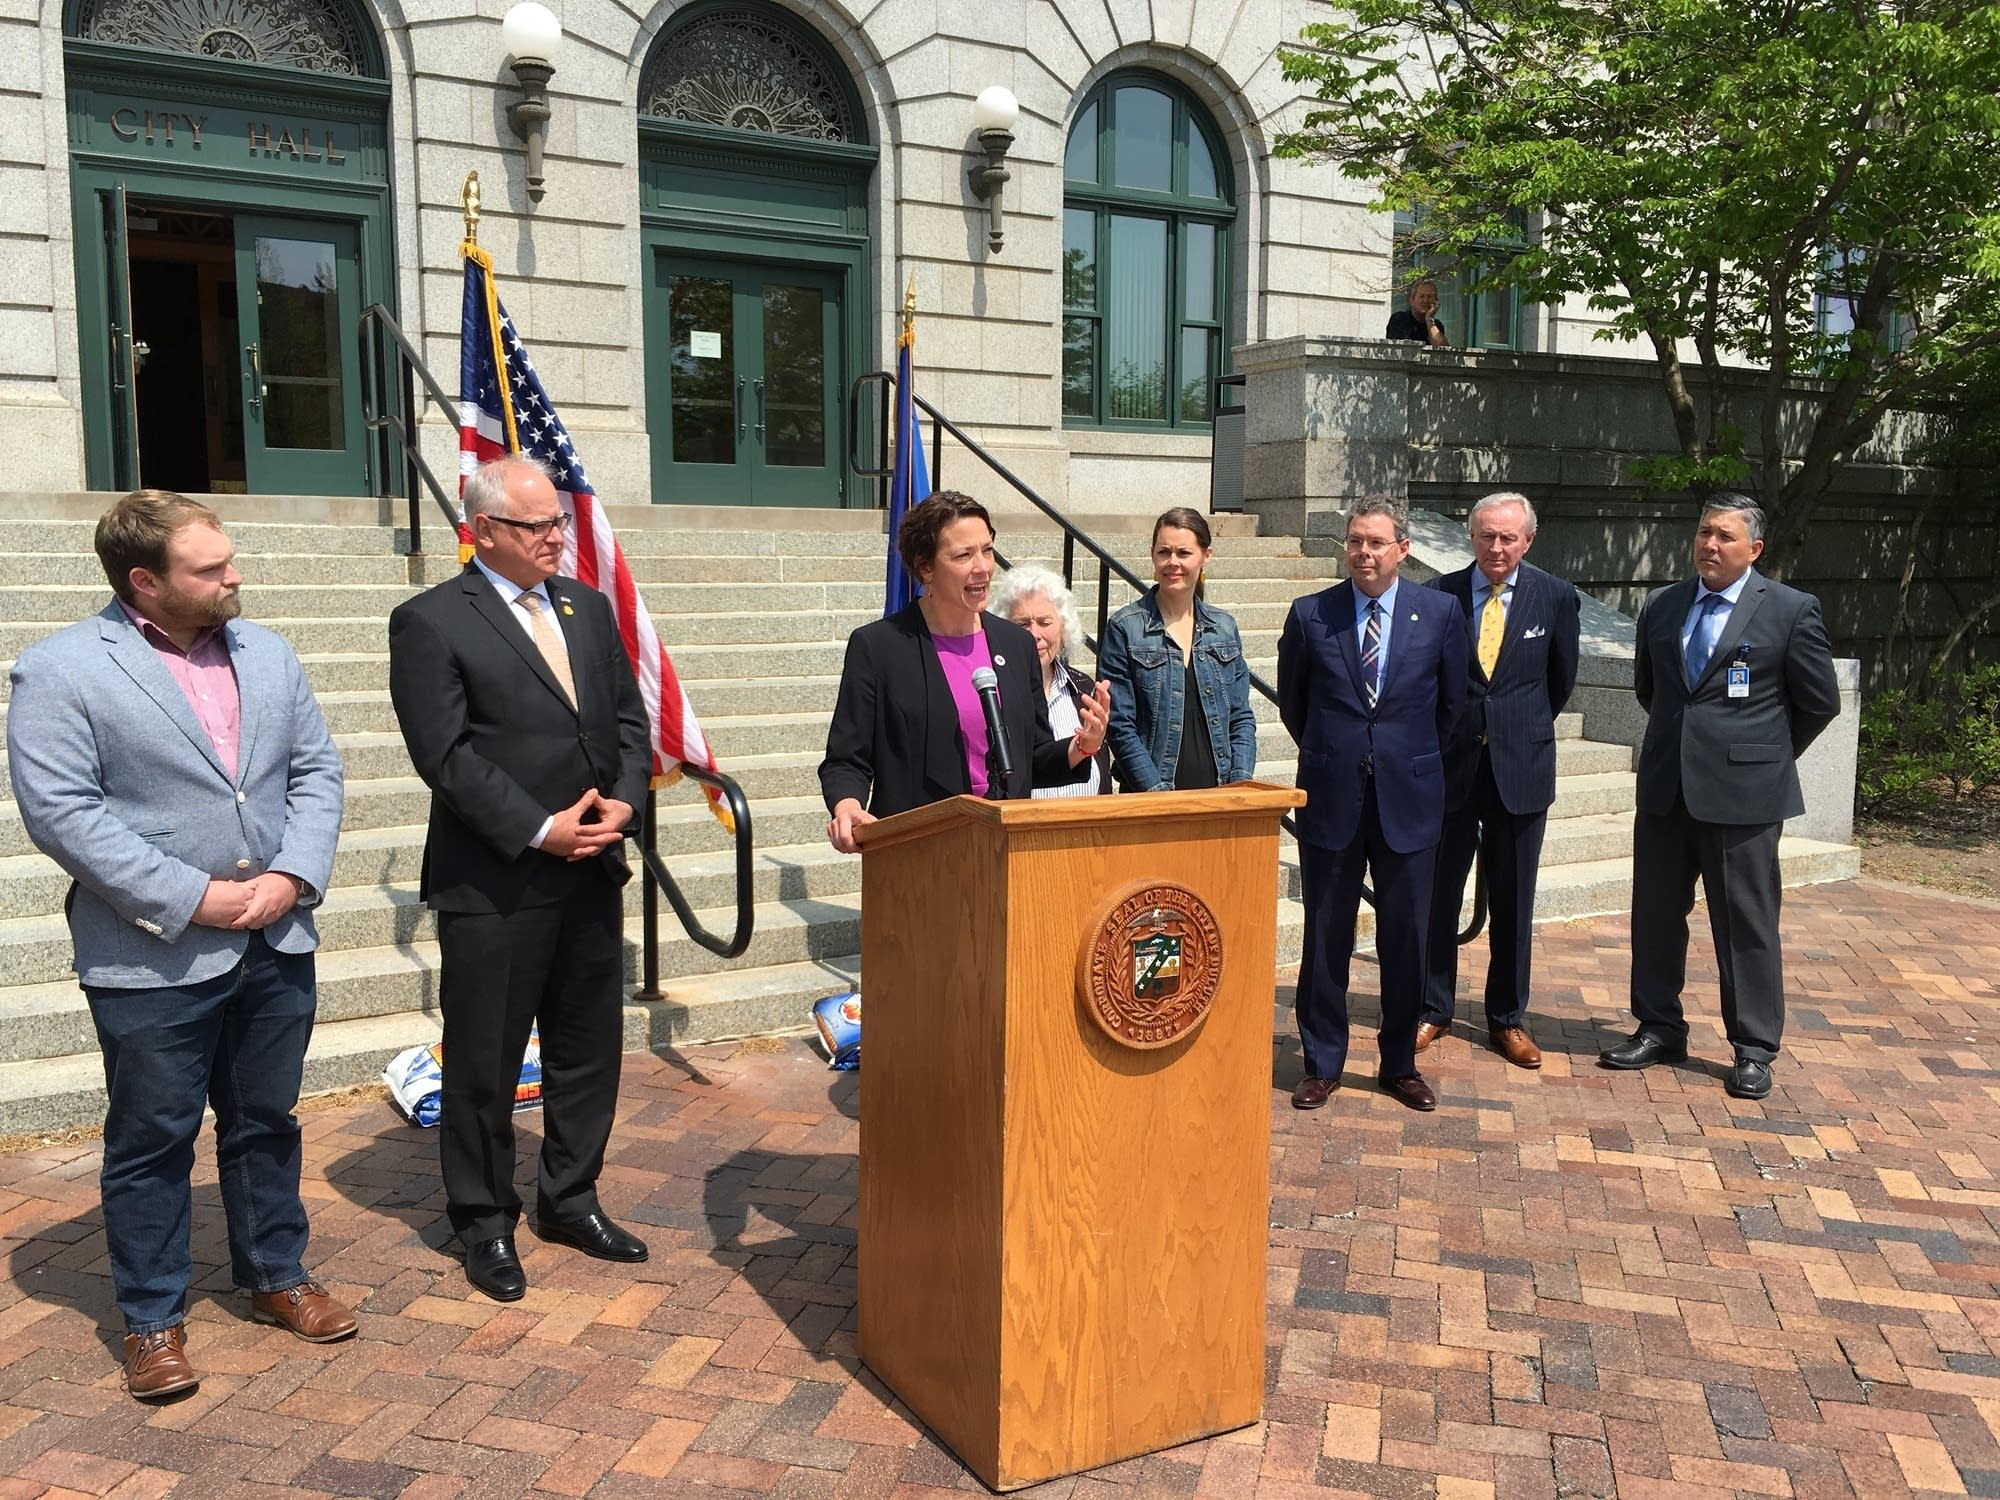 Duluth Mayor Emily Larson discusses the importance of the medical district